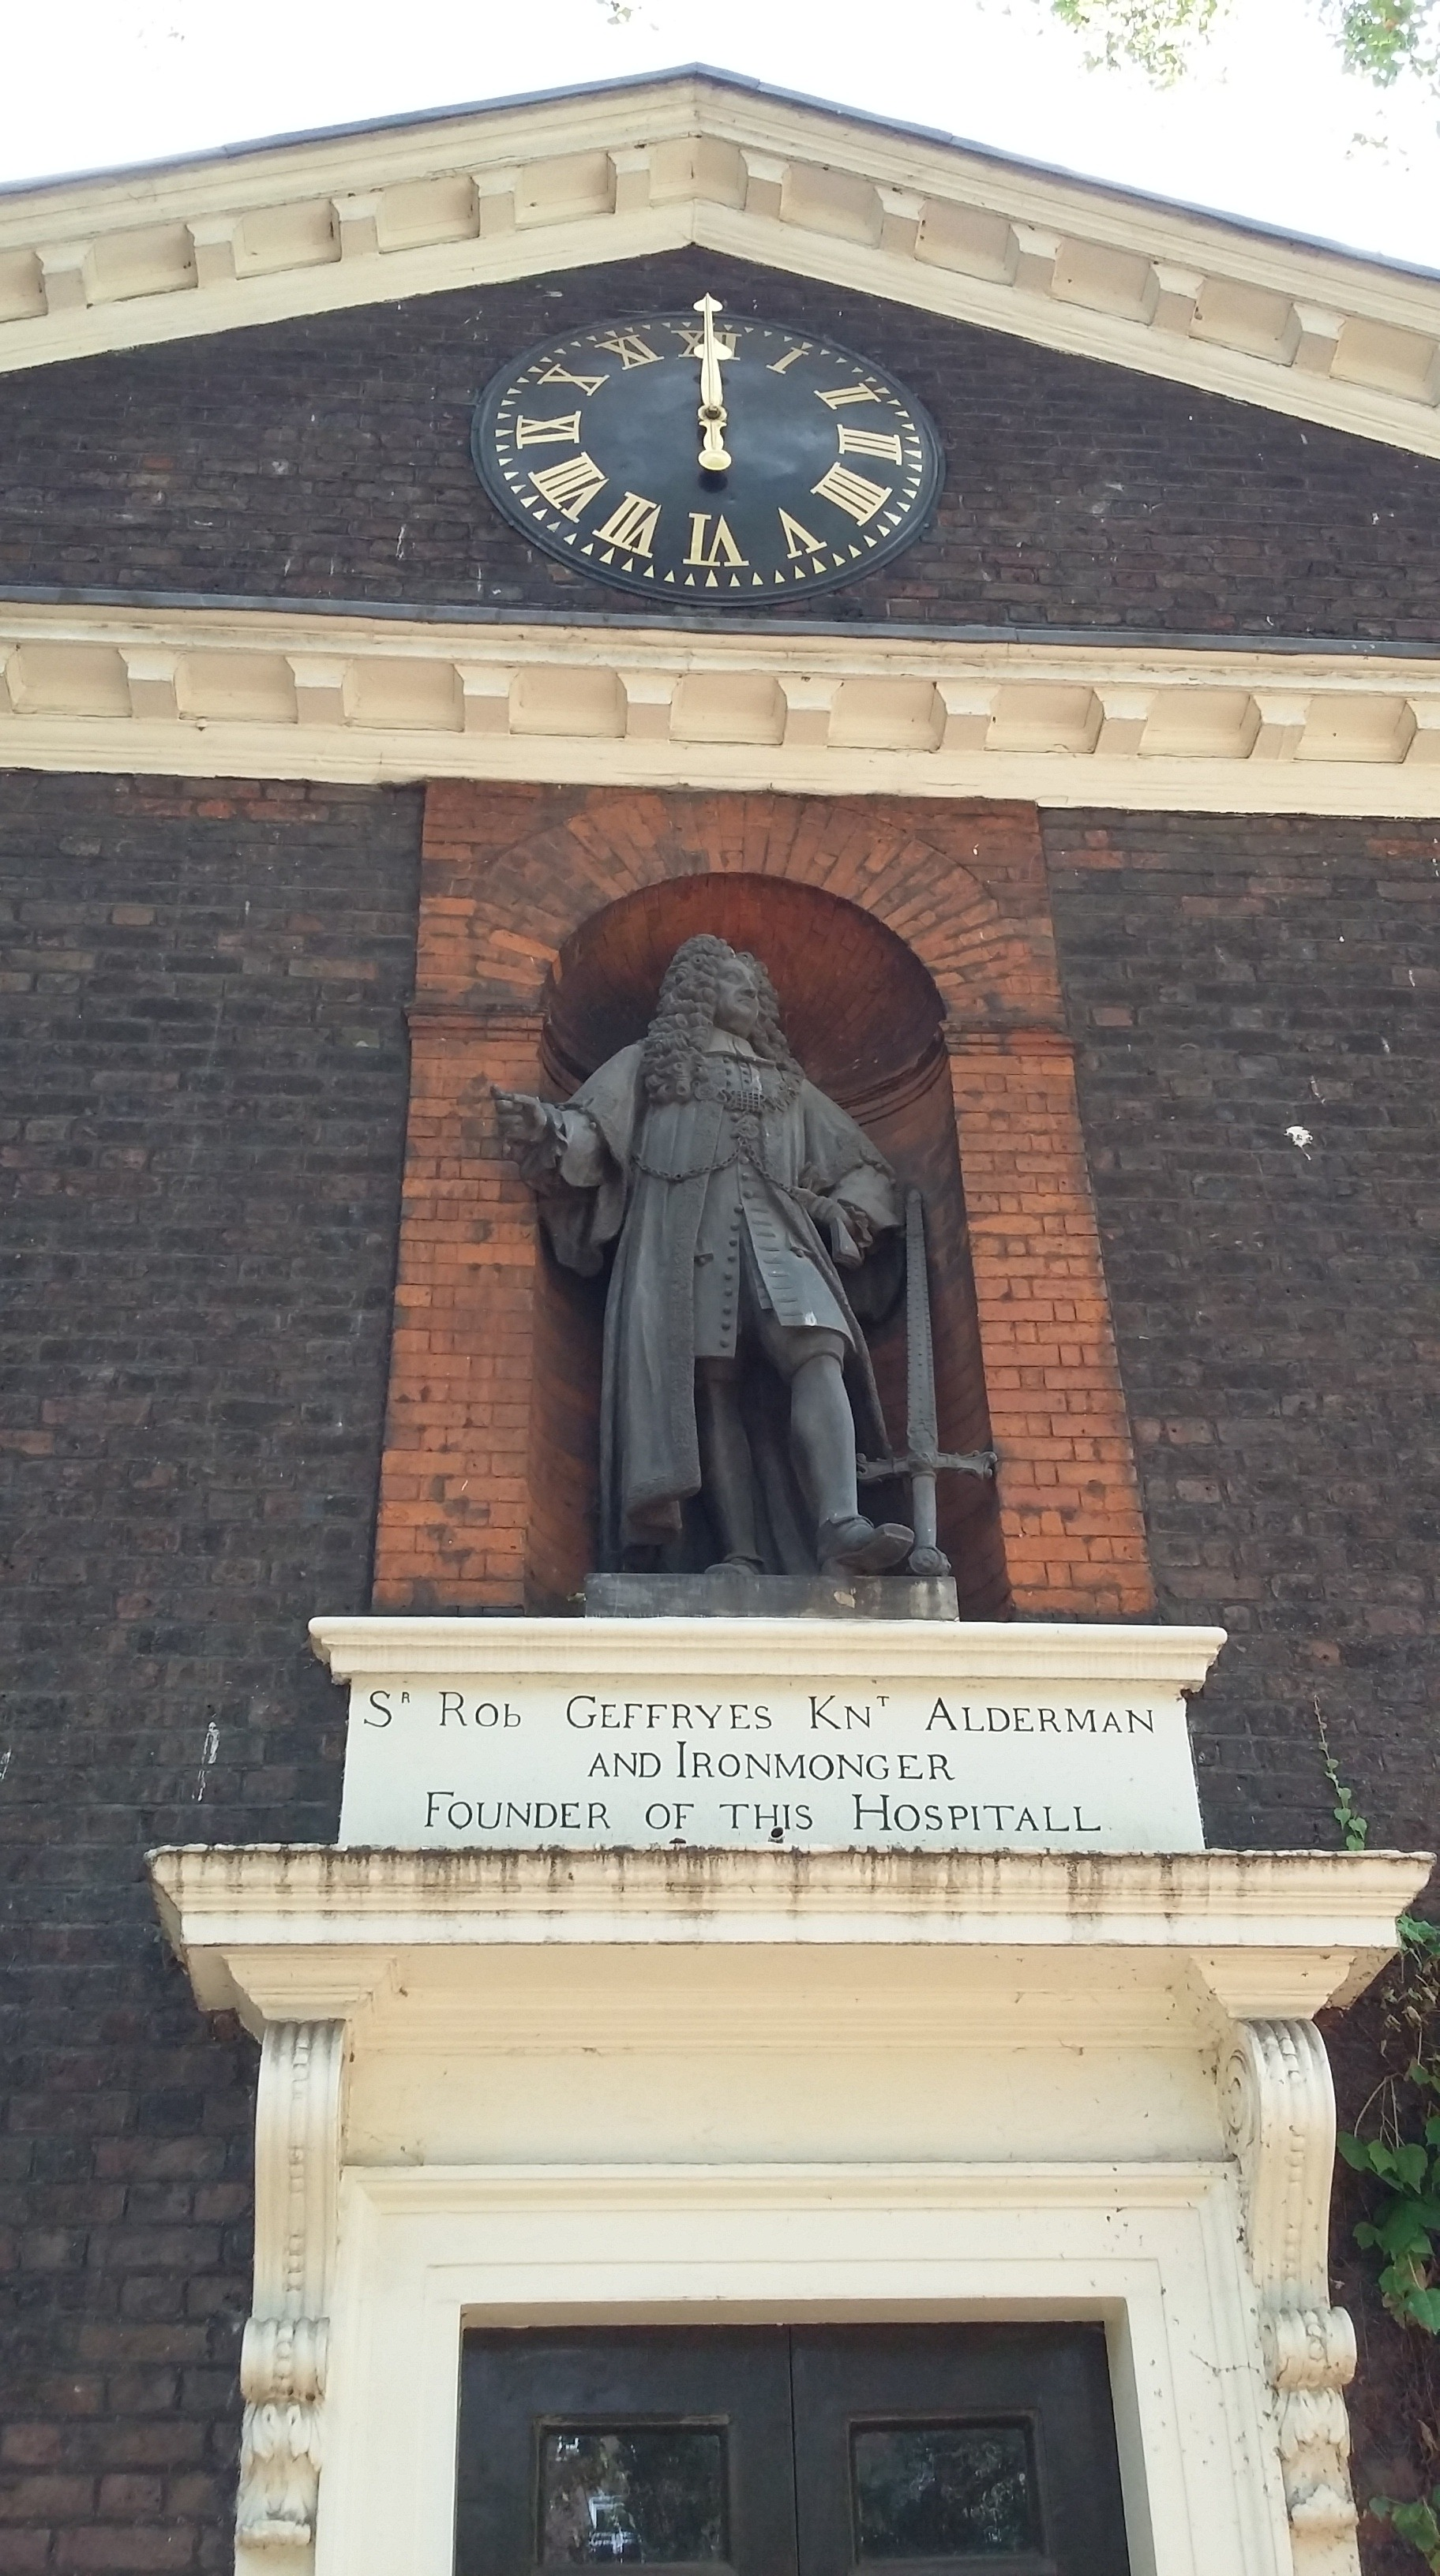 Statue of Sir Robert Geffrye